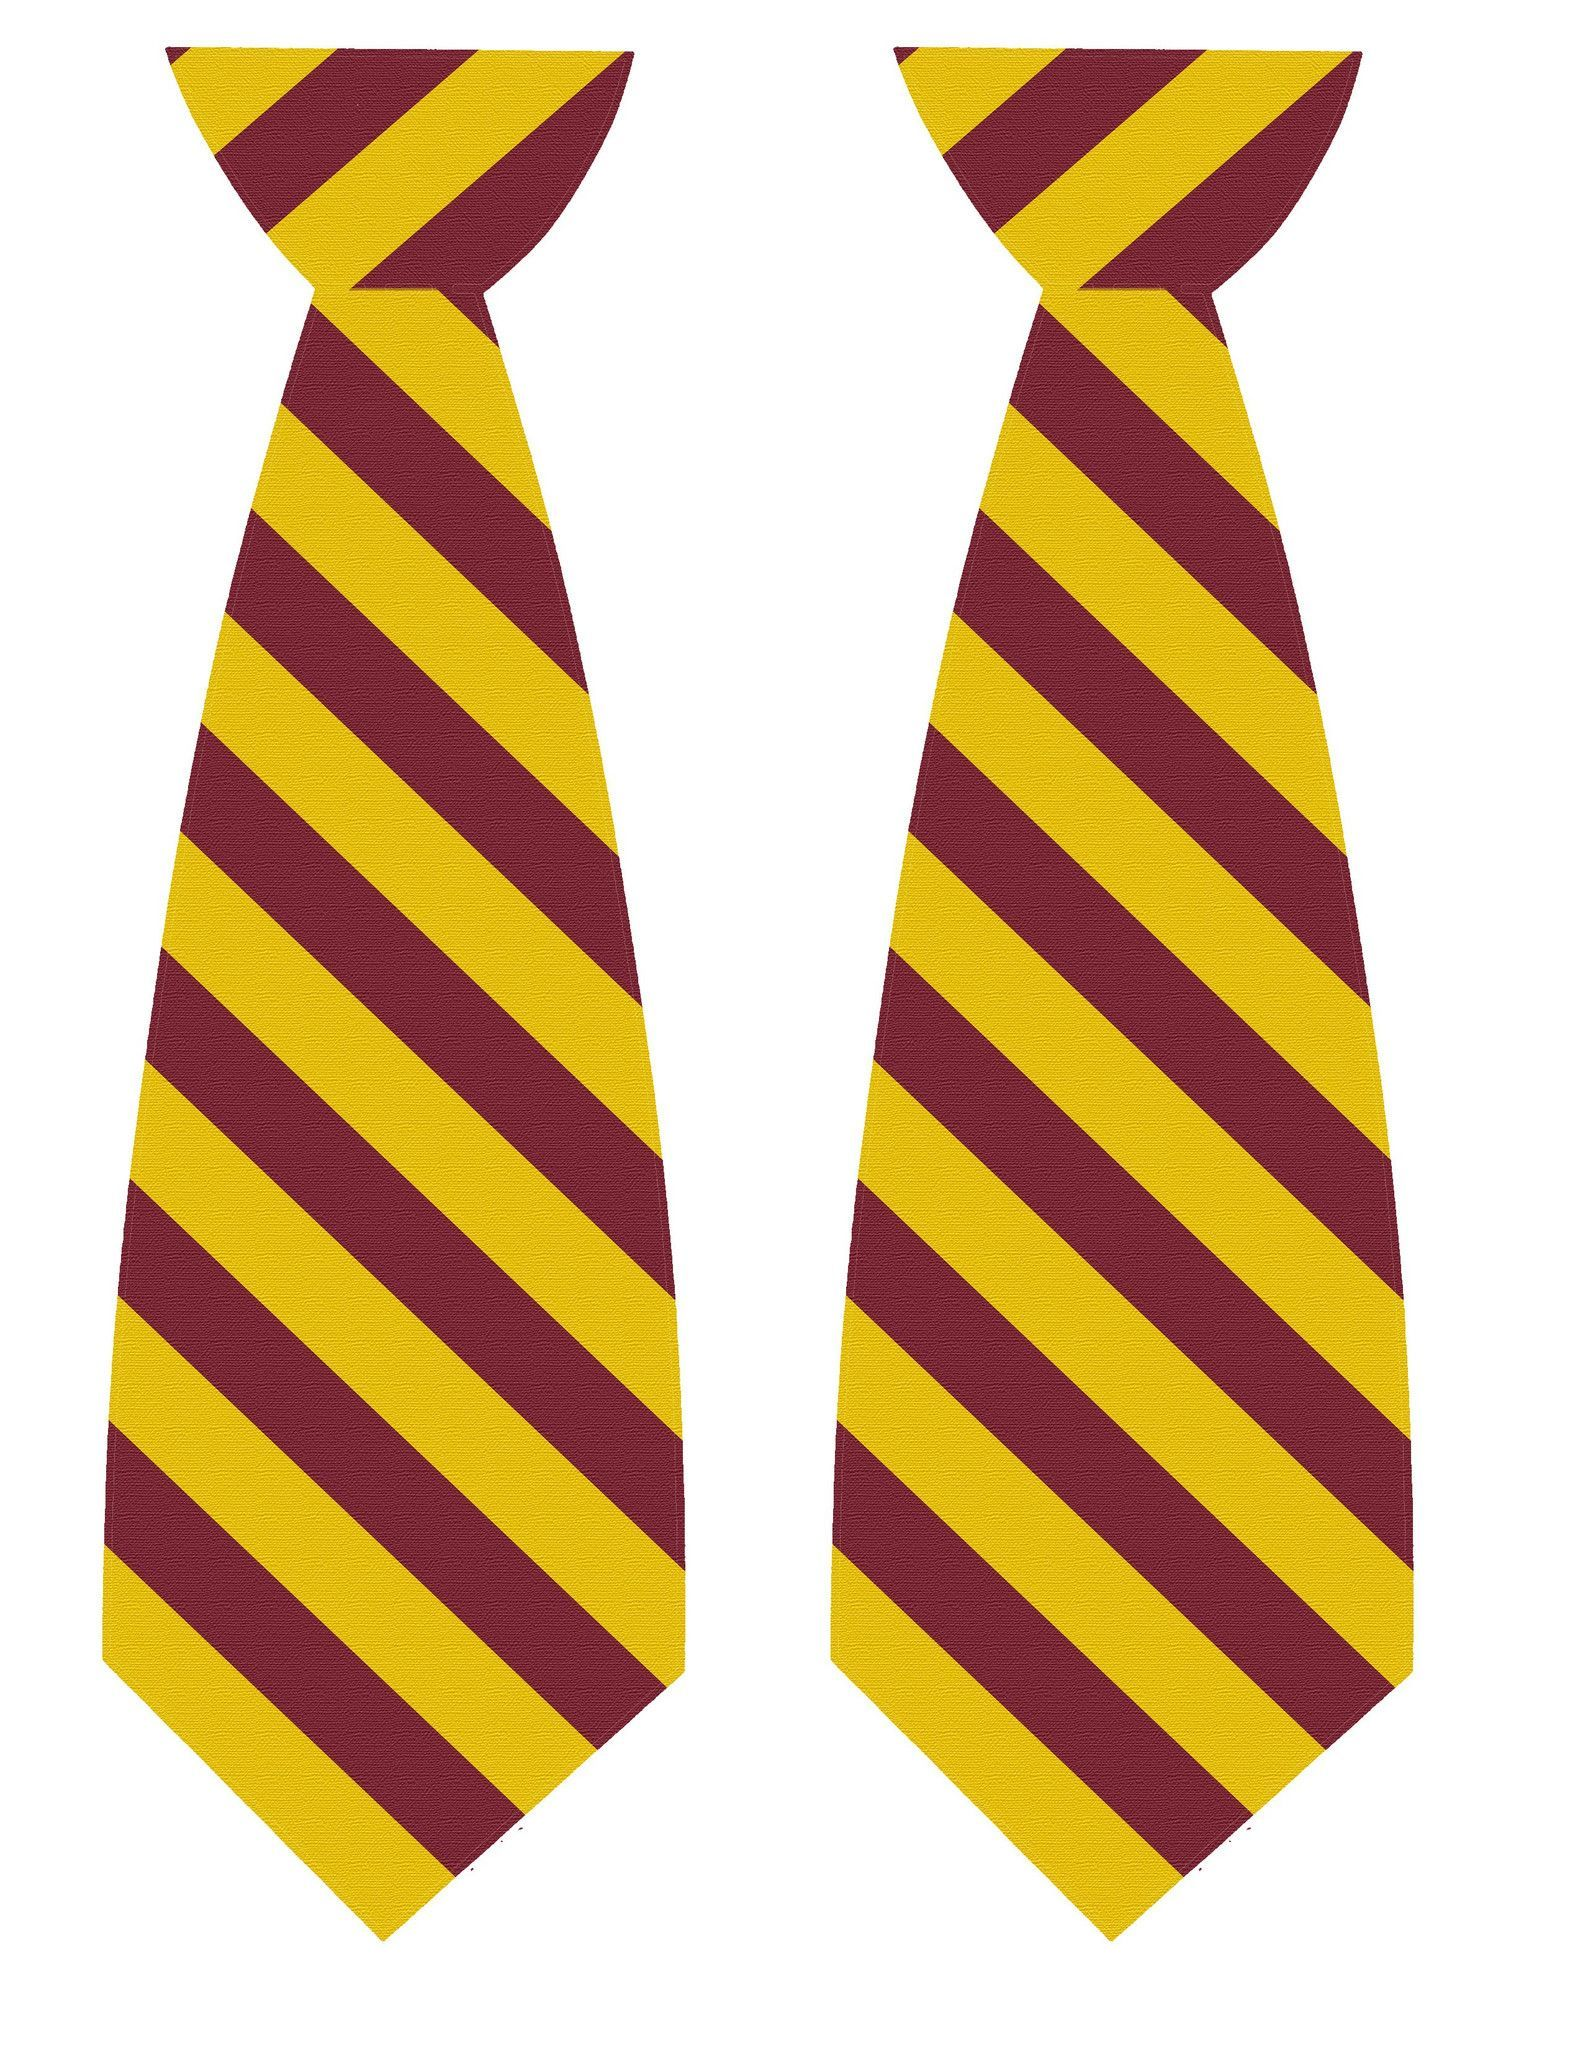 Harry potter tie printables harry potter tie harry for Harry potter tie template